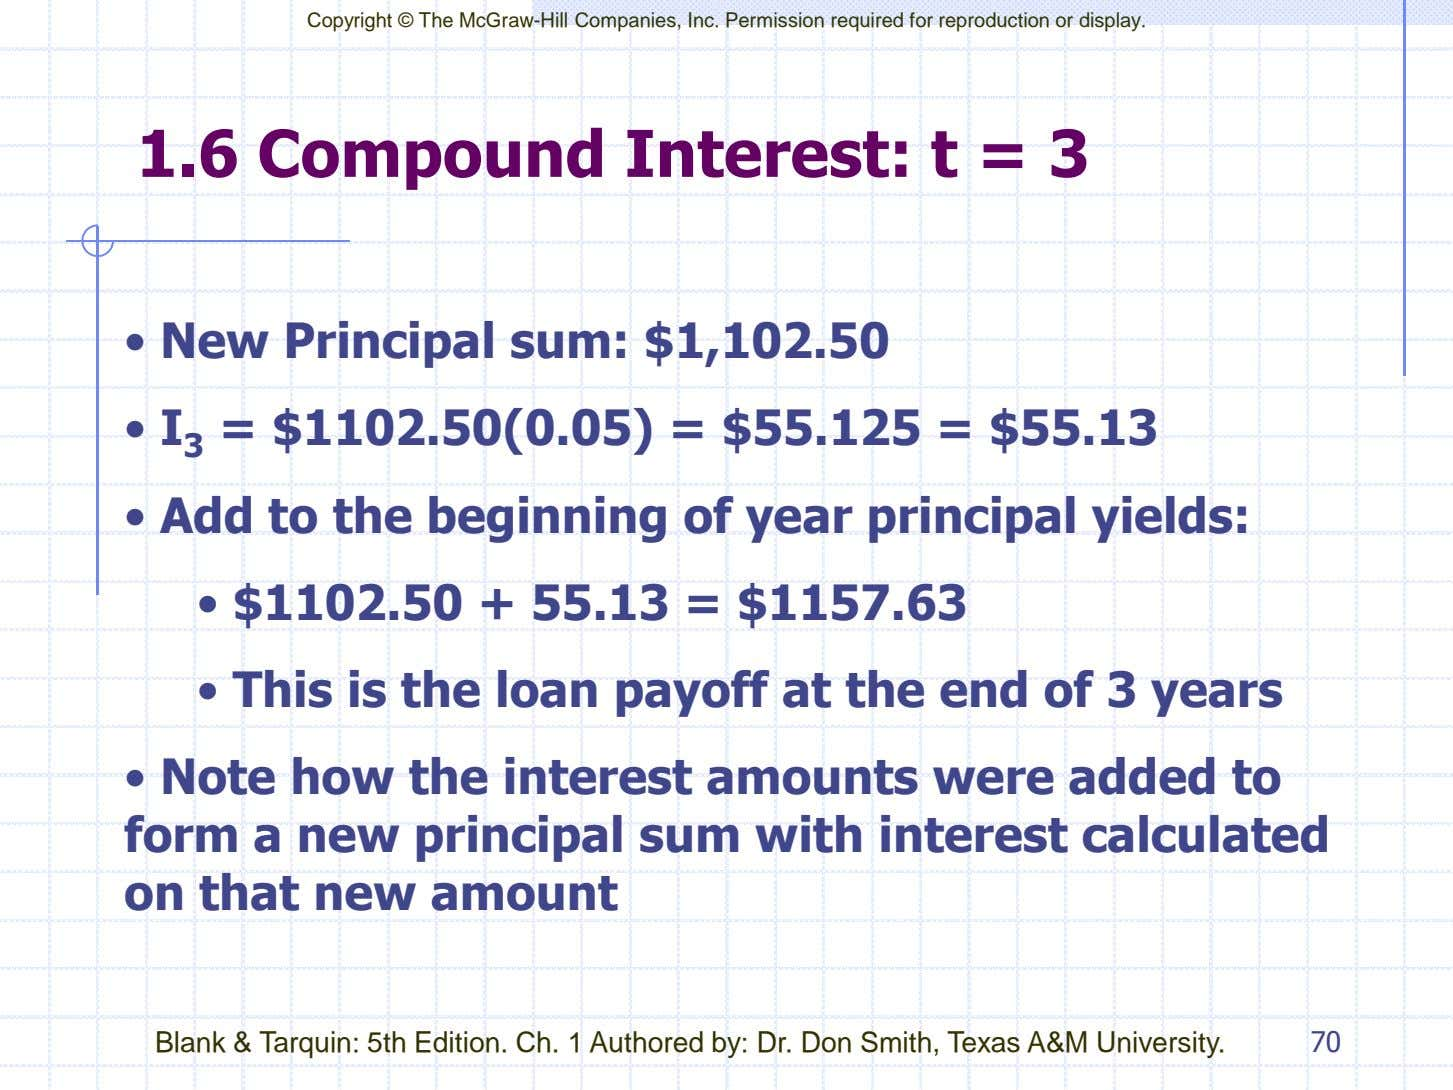 Copyright © The McGraw-Hill Companies, Inc. Permission required for reproduction or display. 1.6 Compound Interest: